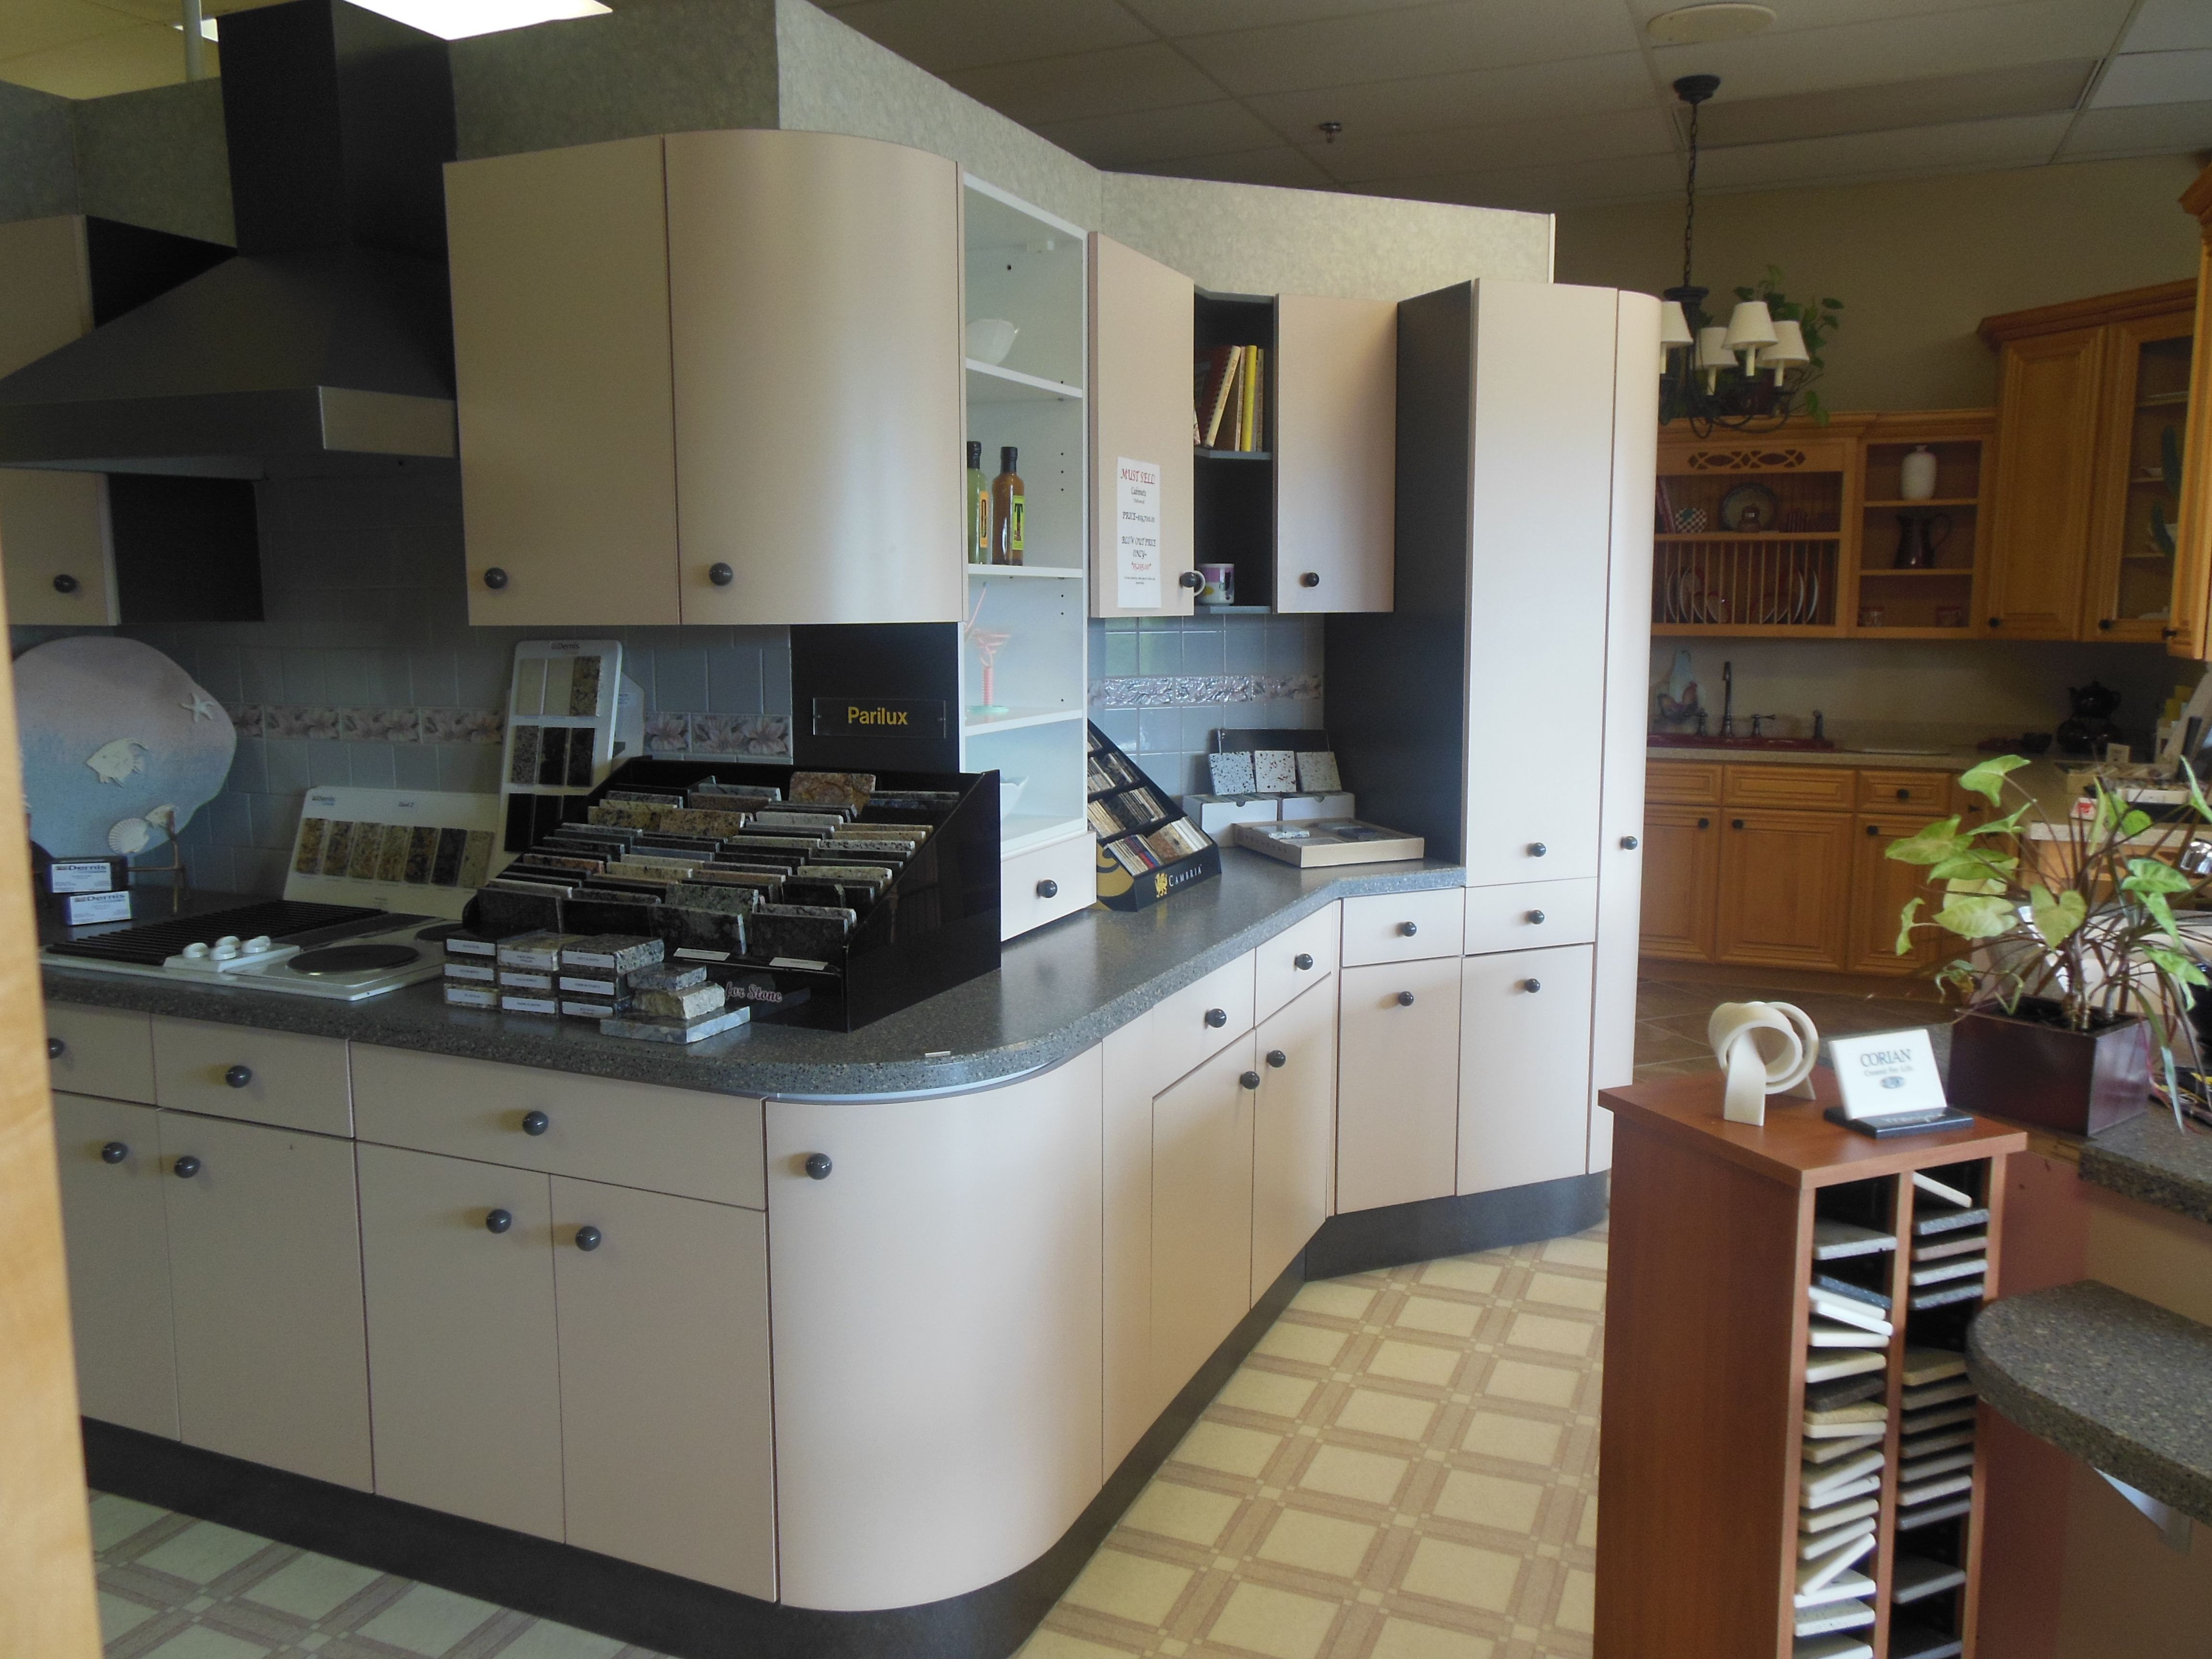 Cabinets Displays For Sale Many To Choose From Many With Upgrades And Savings To You Kitchen Remodel Cabinet Kitchen Cabinets